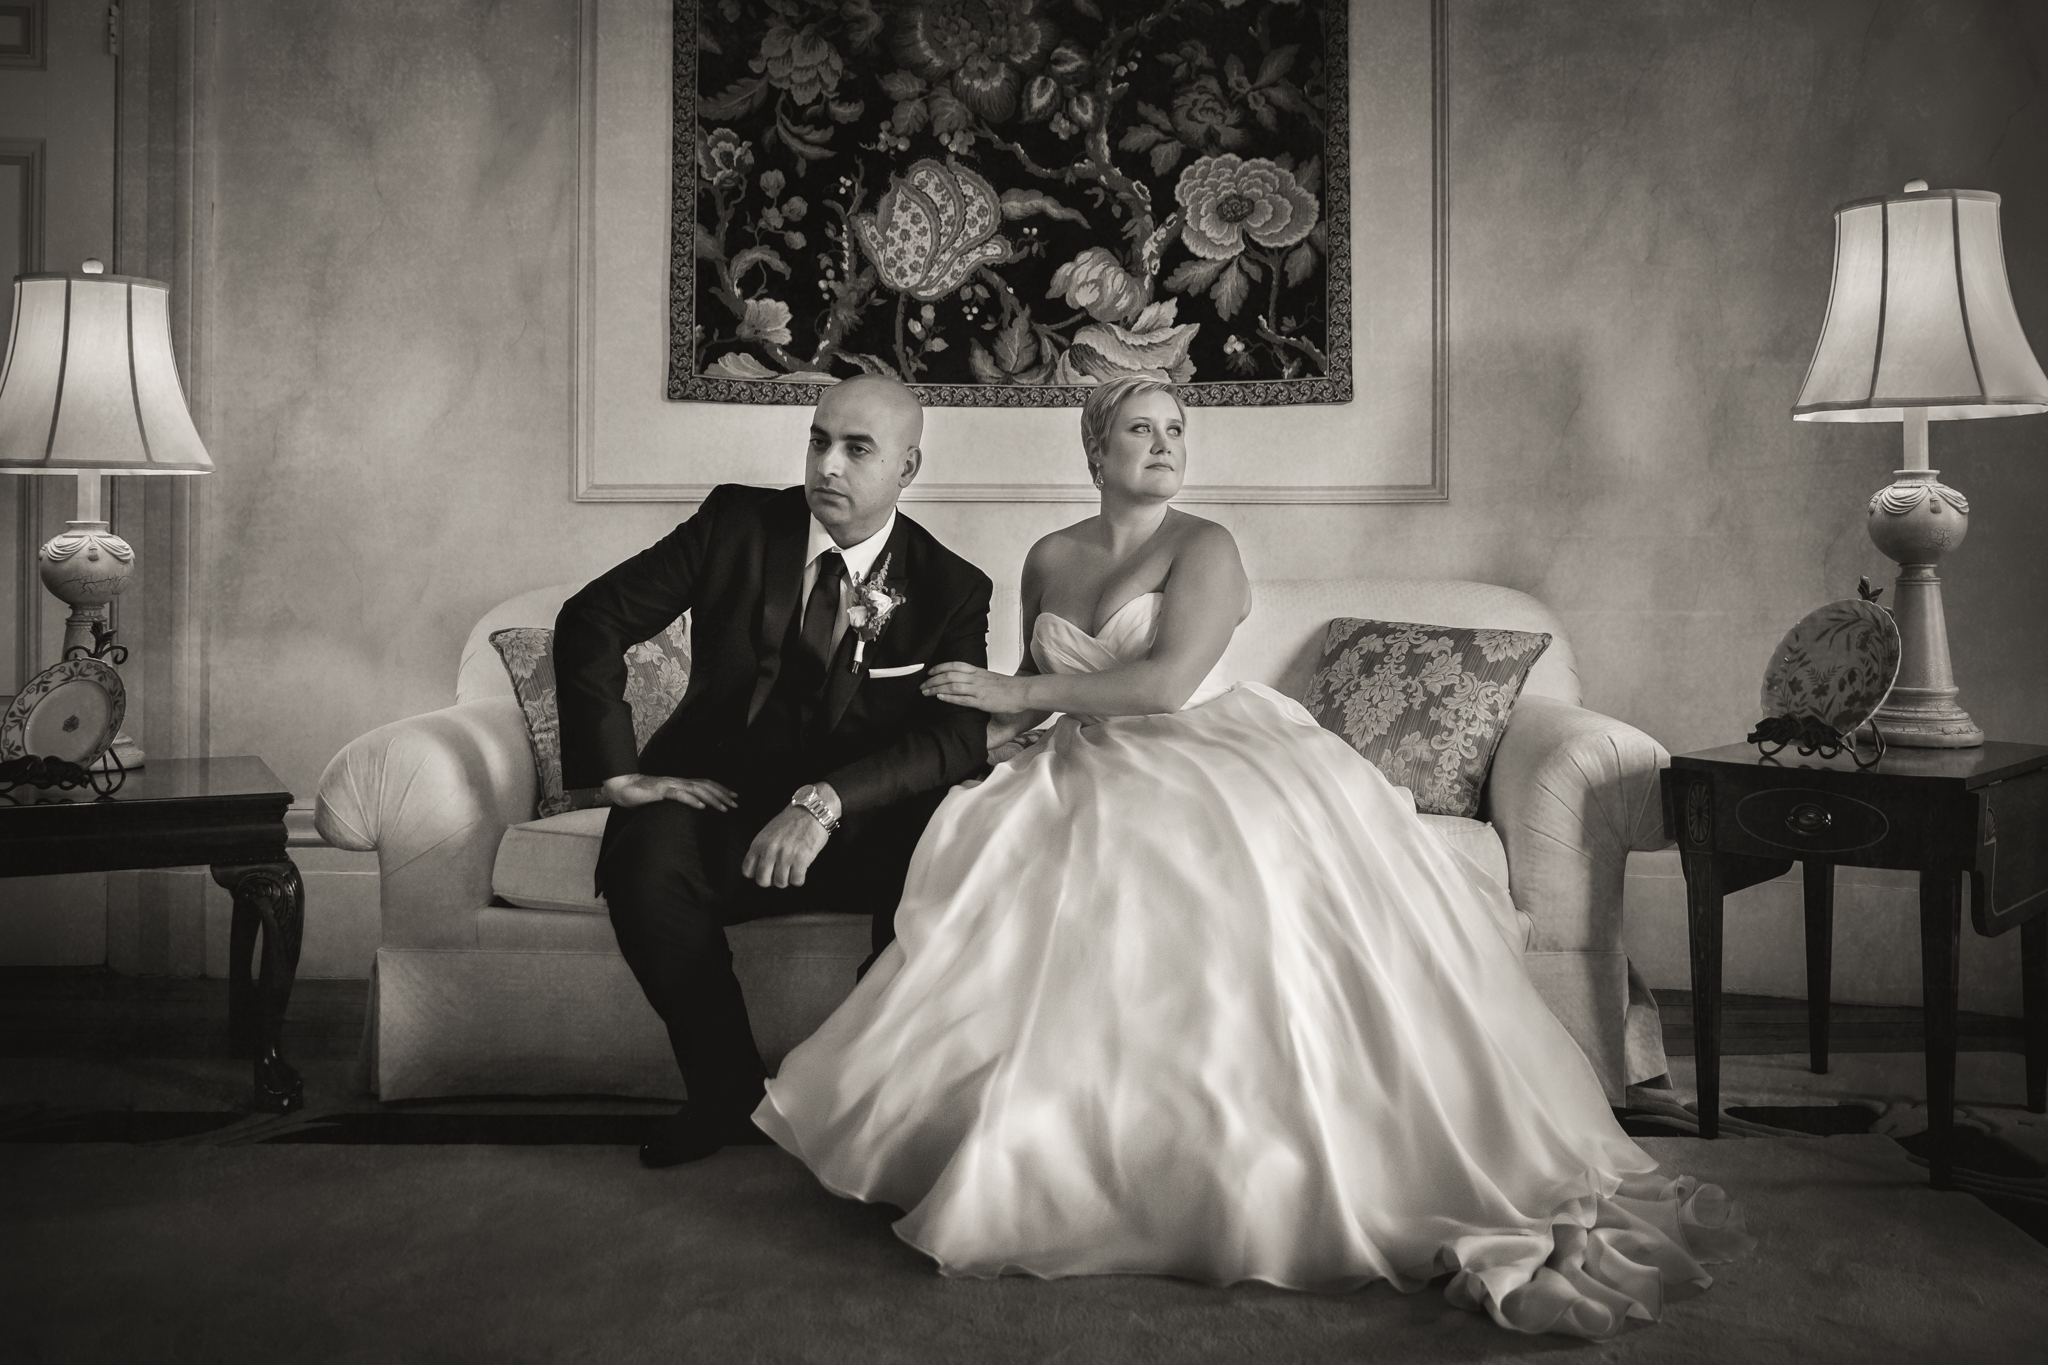 new-hampshire-wedding-photographer-chris-keeley-photography-07.jpg